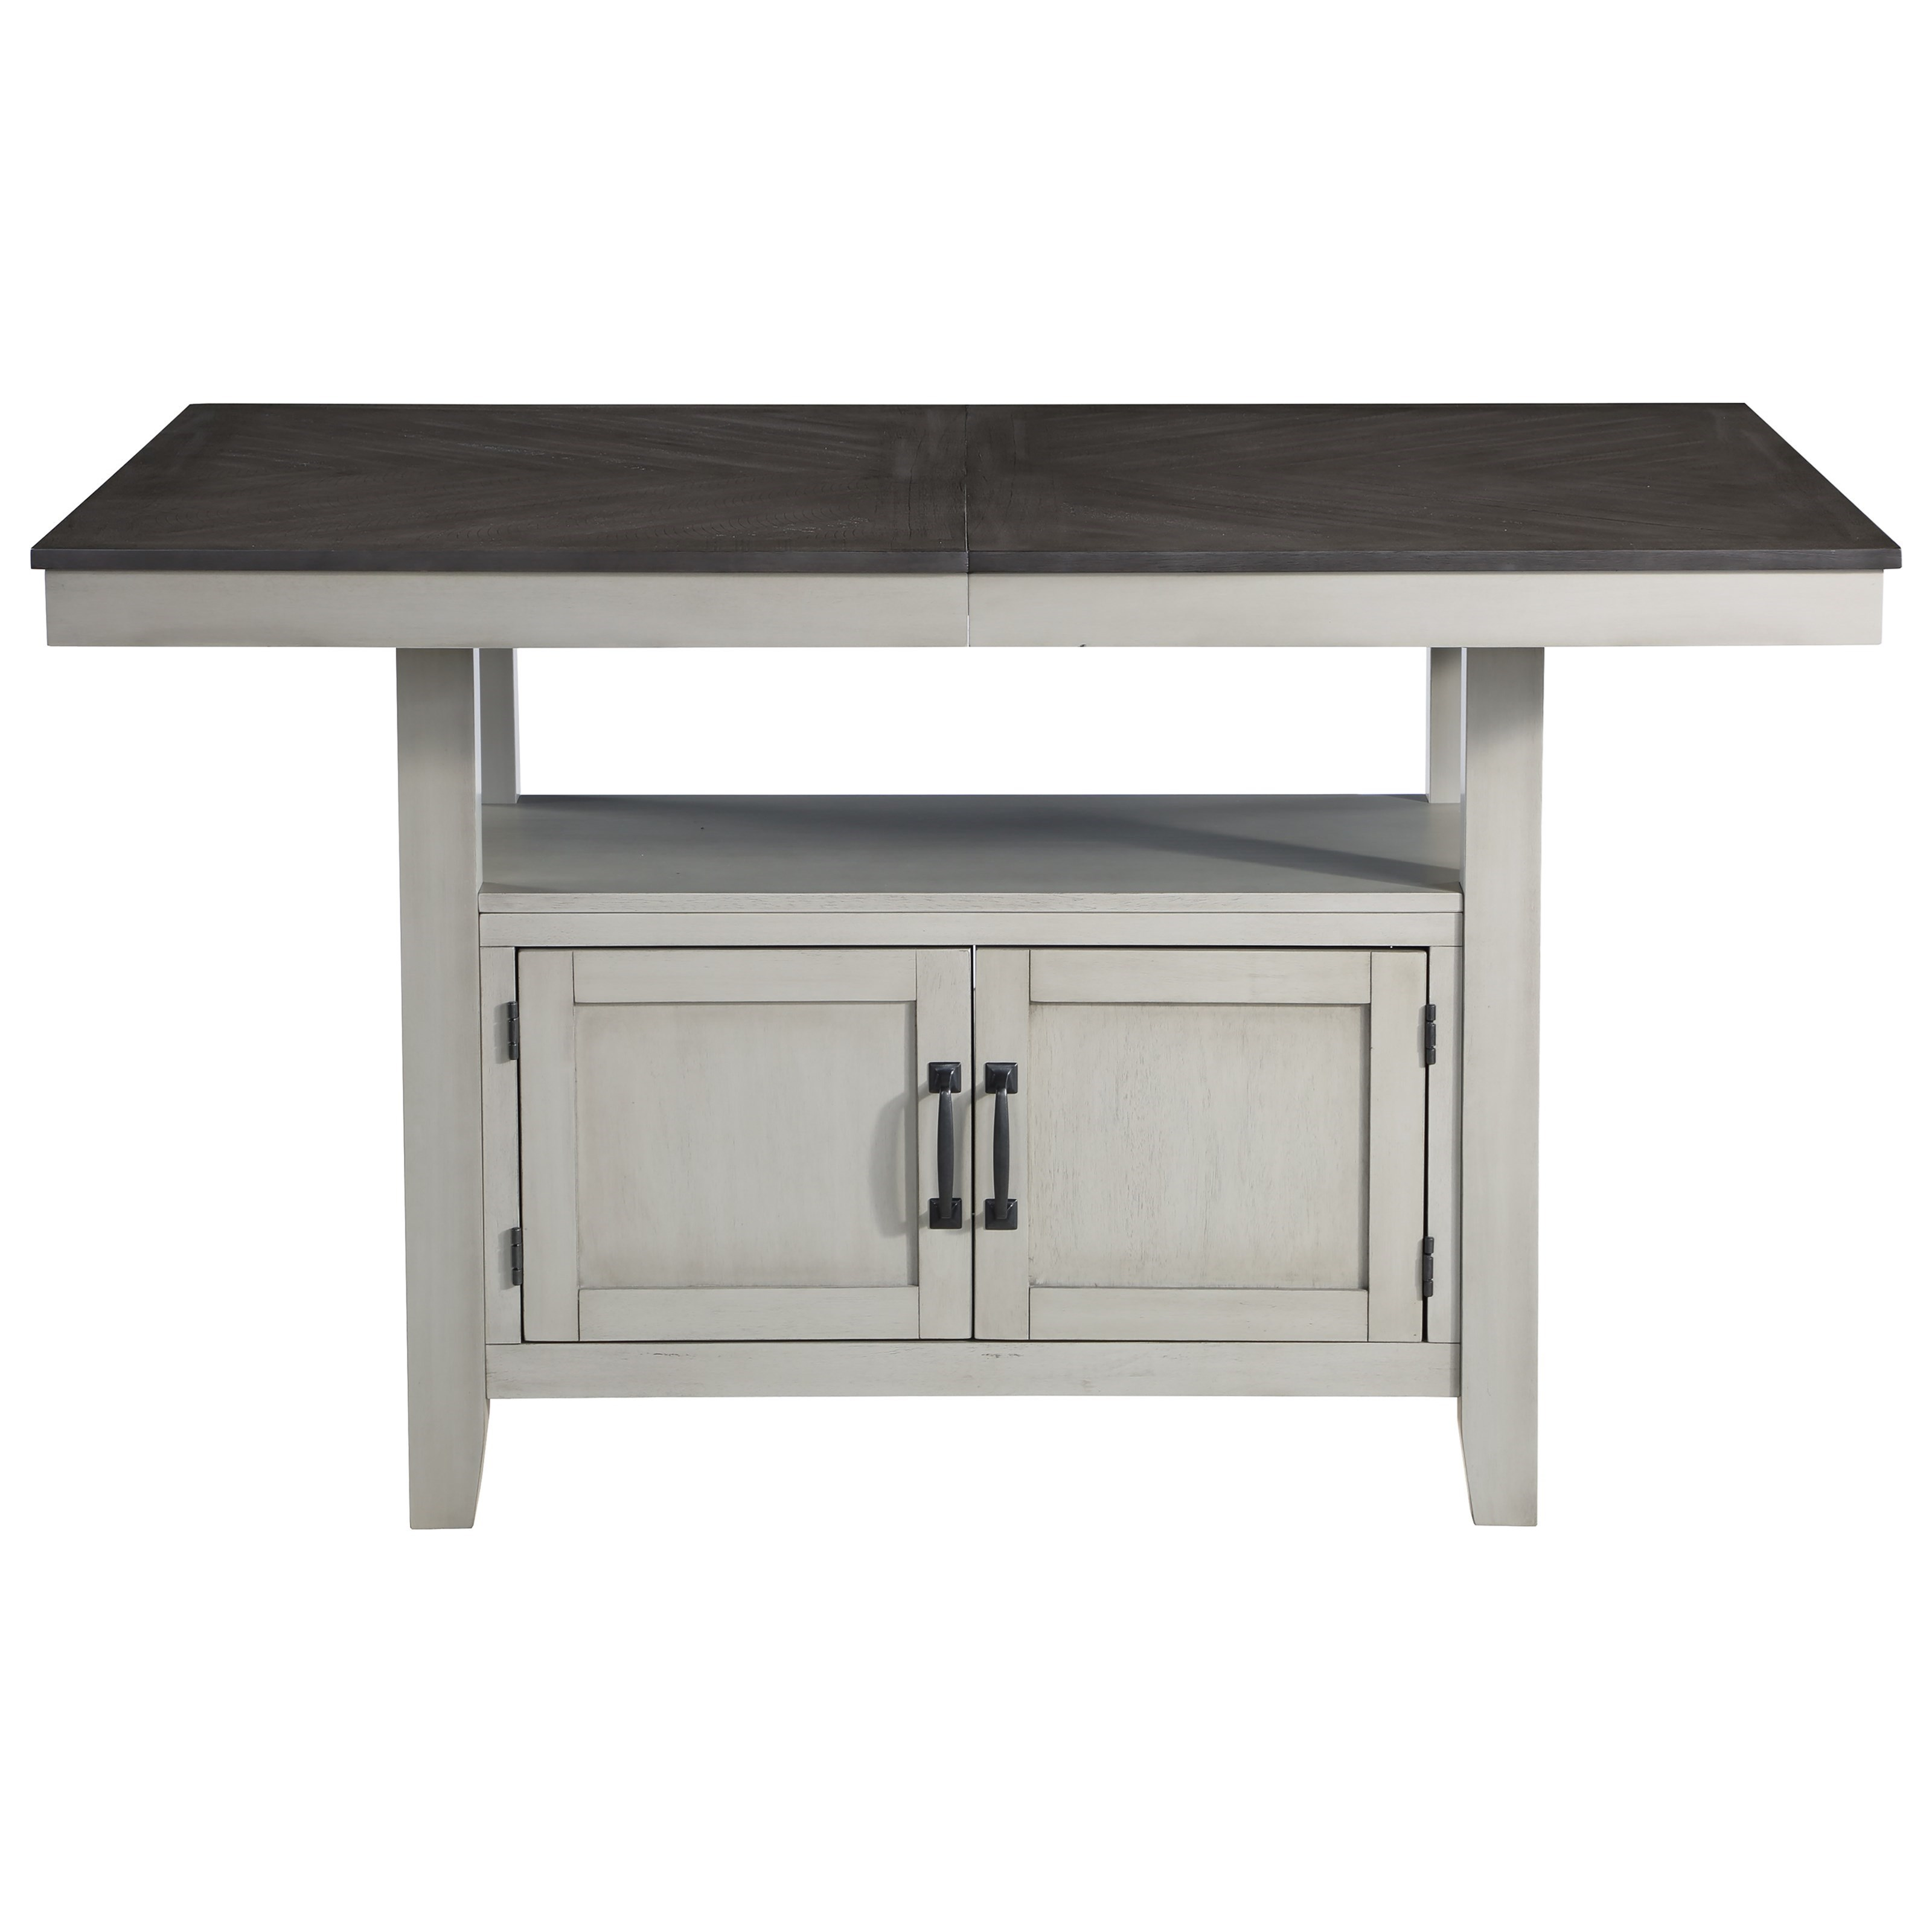 "Hyland Counter Table w/ 20"" Leaf by Steve Silver at Darvin Furniture"